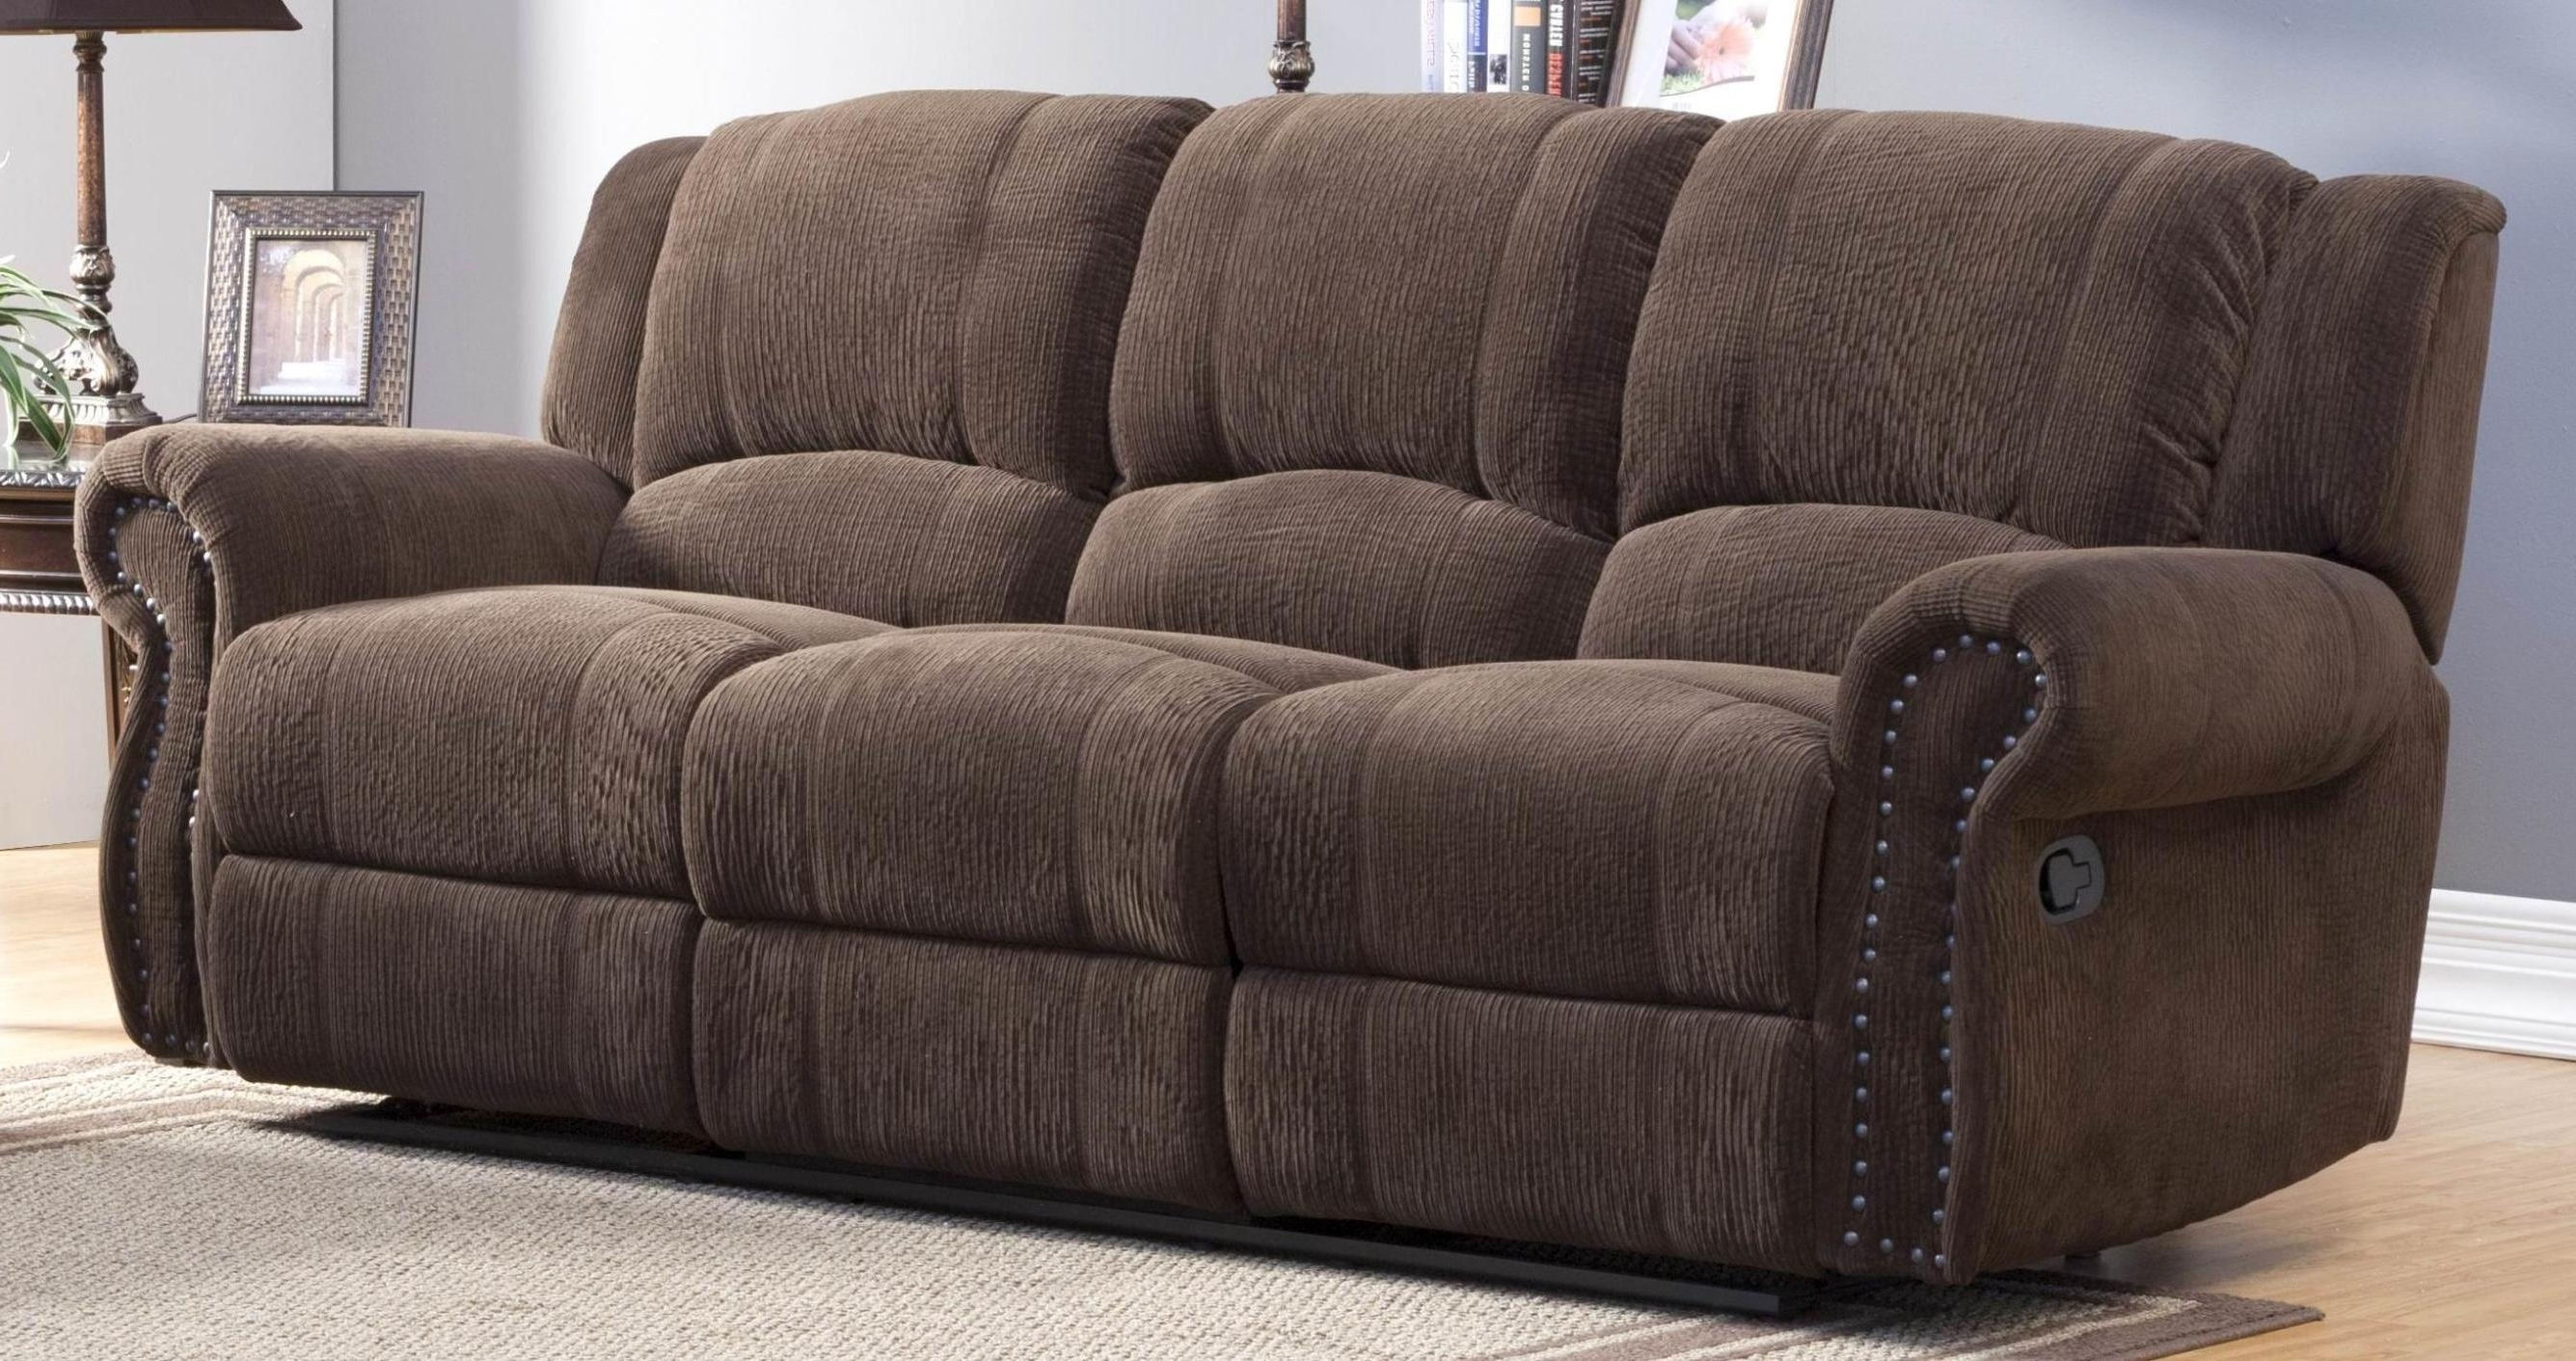 Dual Purpose Furniture Small Spaces Leather Sofas For Apartments In Popular Sectional Sofas With Recliners For Small Spaces (View 18 of 20)